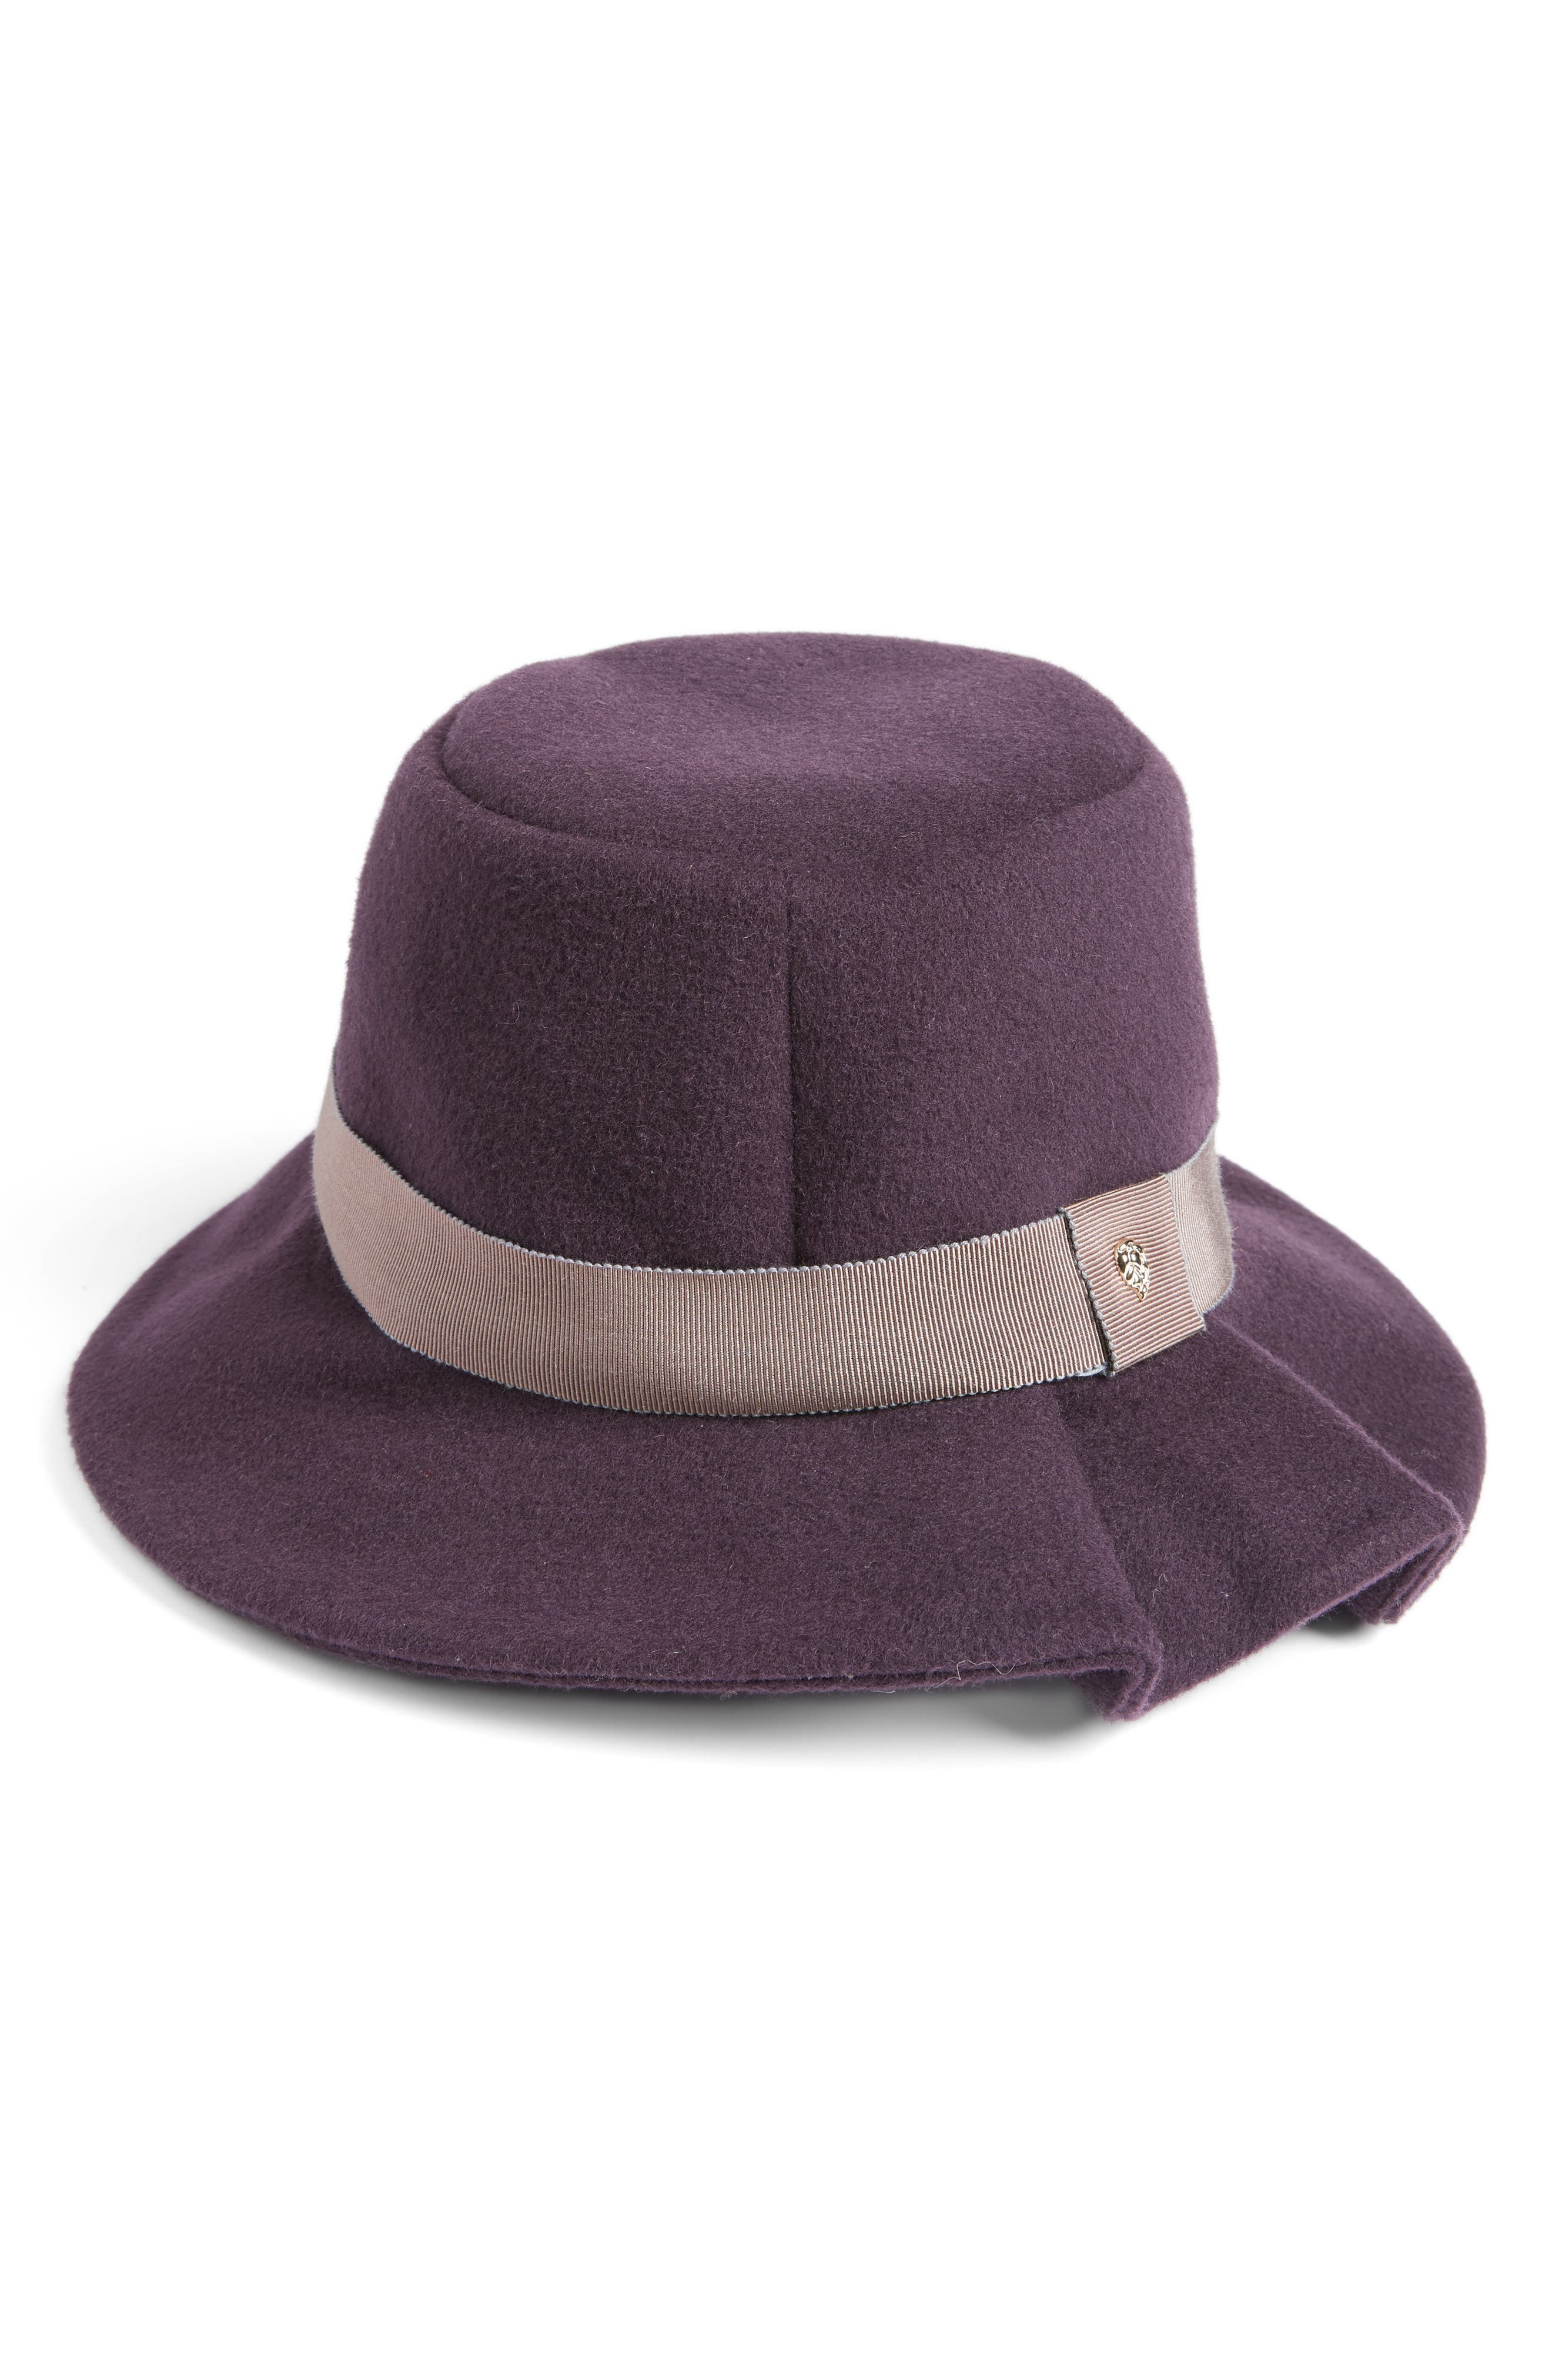 Helen Kaminski Luxe Tapered Bucket Hat